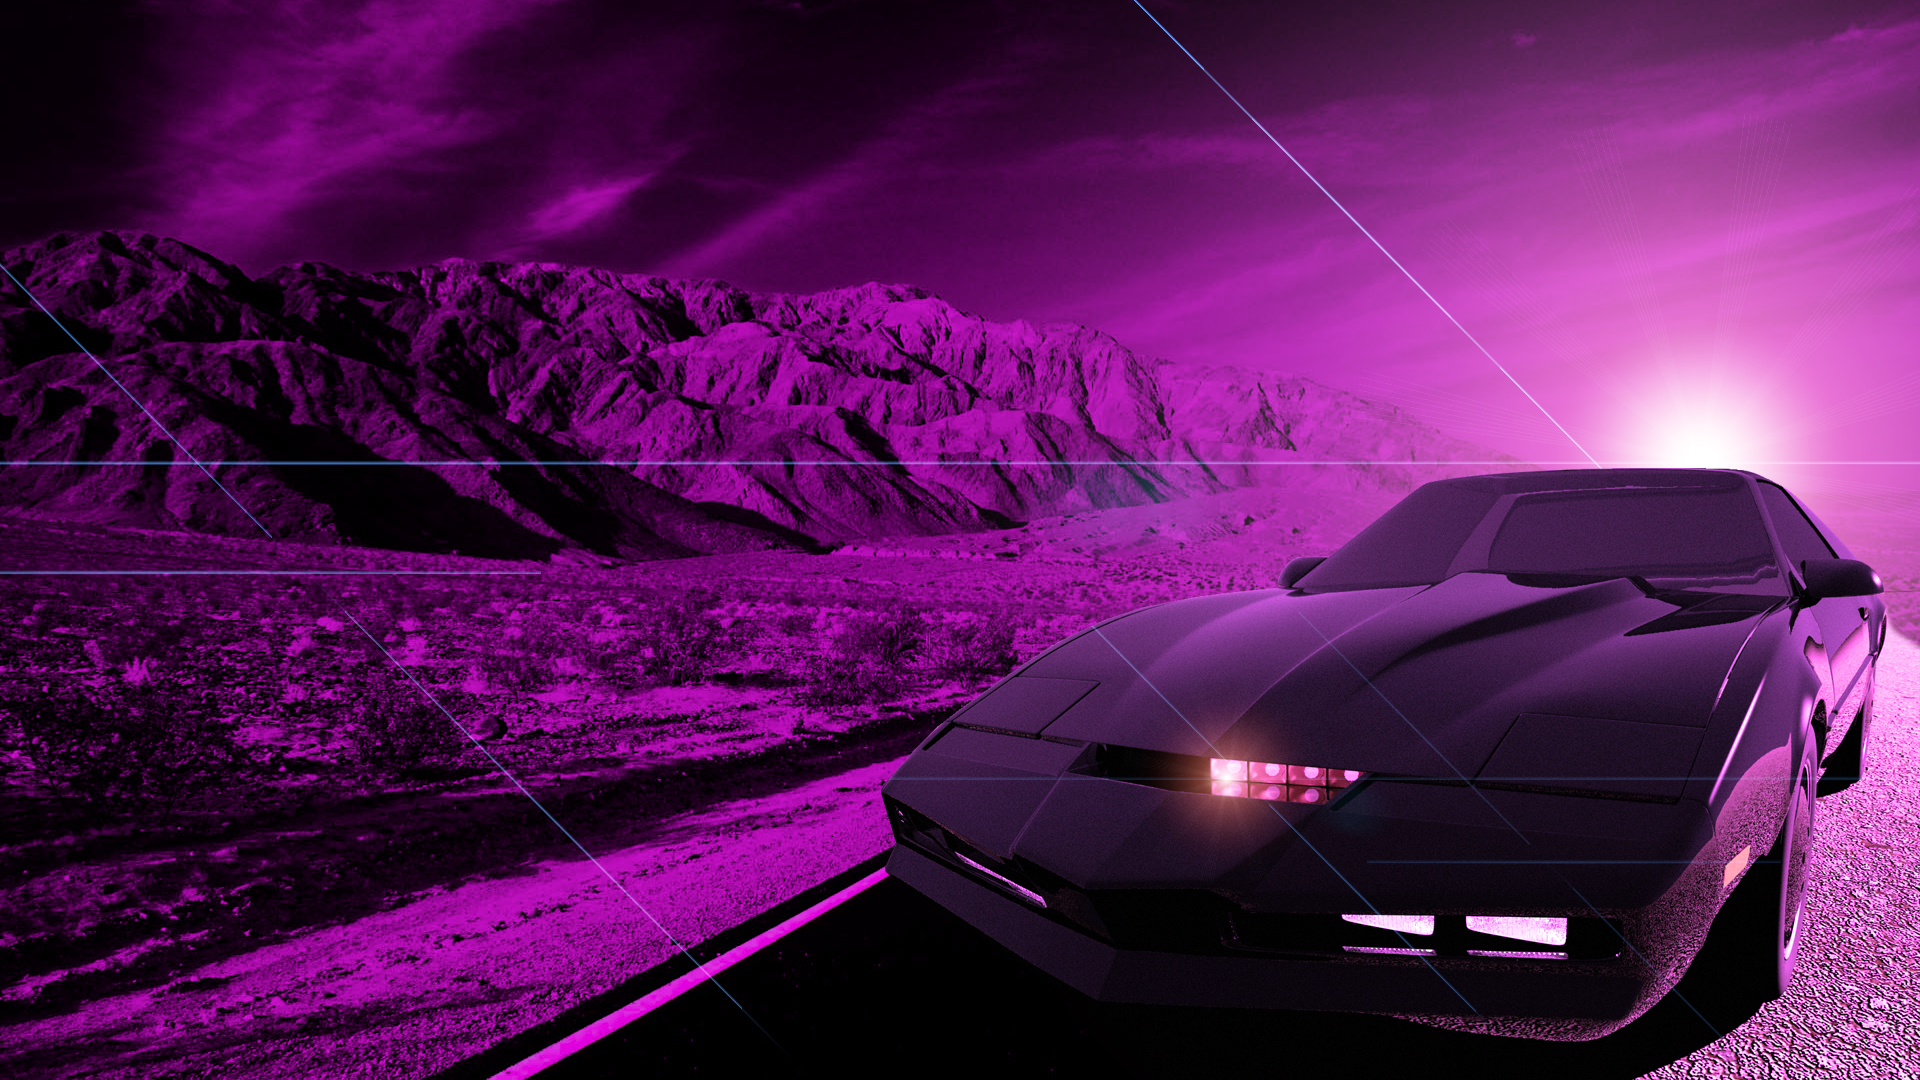 Knight Rider by come2eat 1920x1080